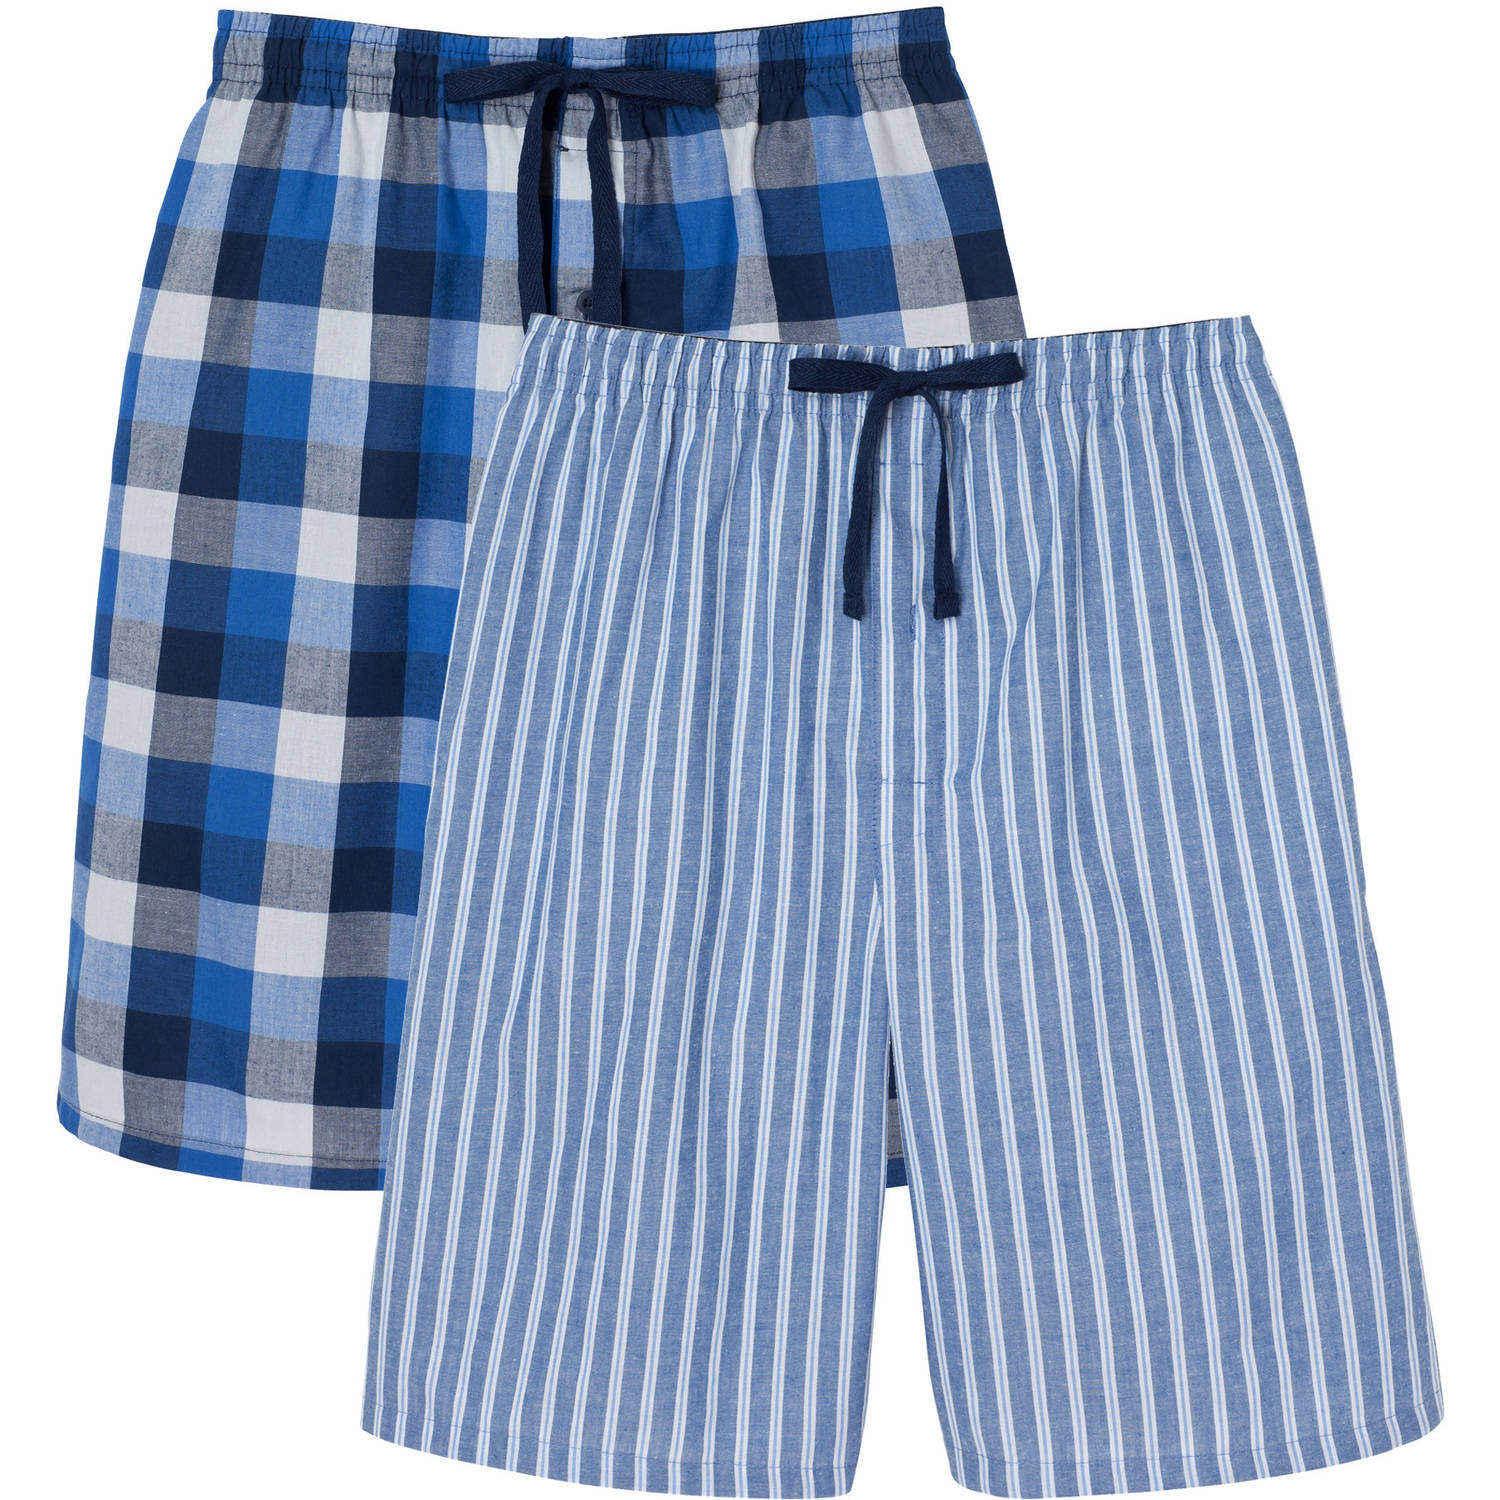 Hanes Men's 2-Pack Woven Sleep Jam Short